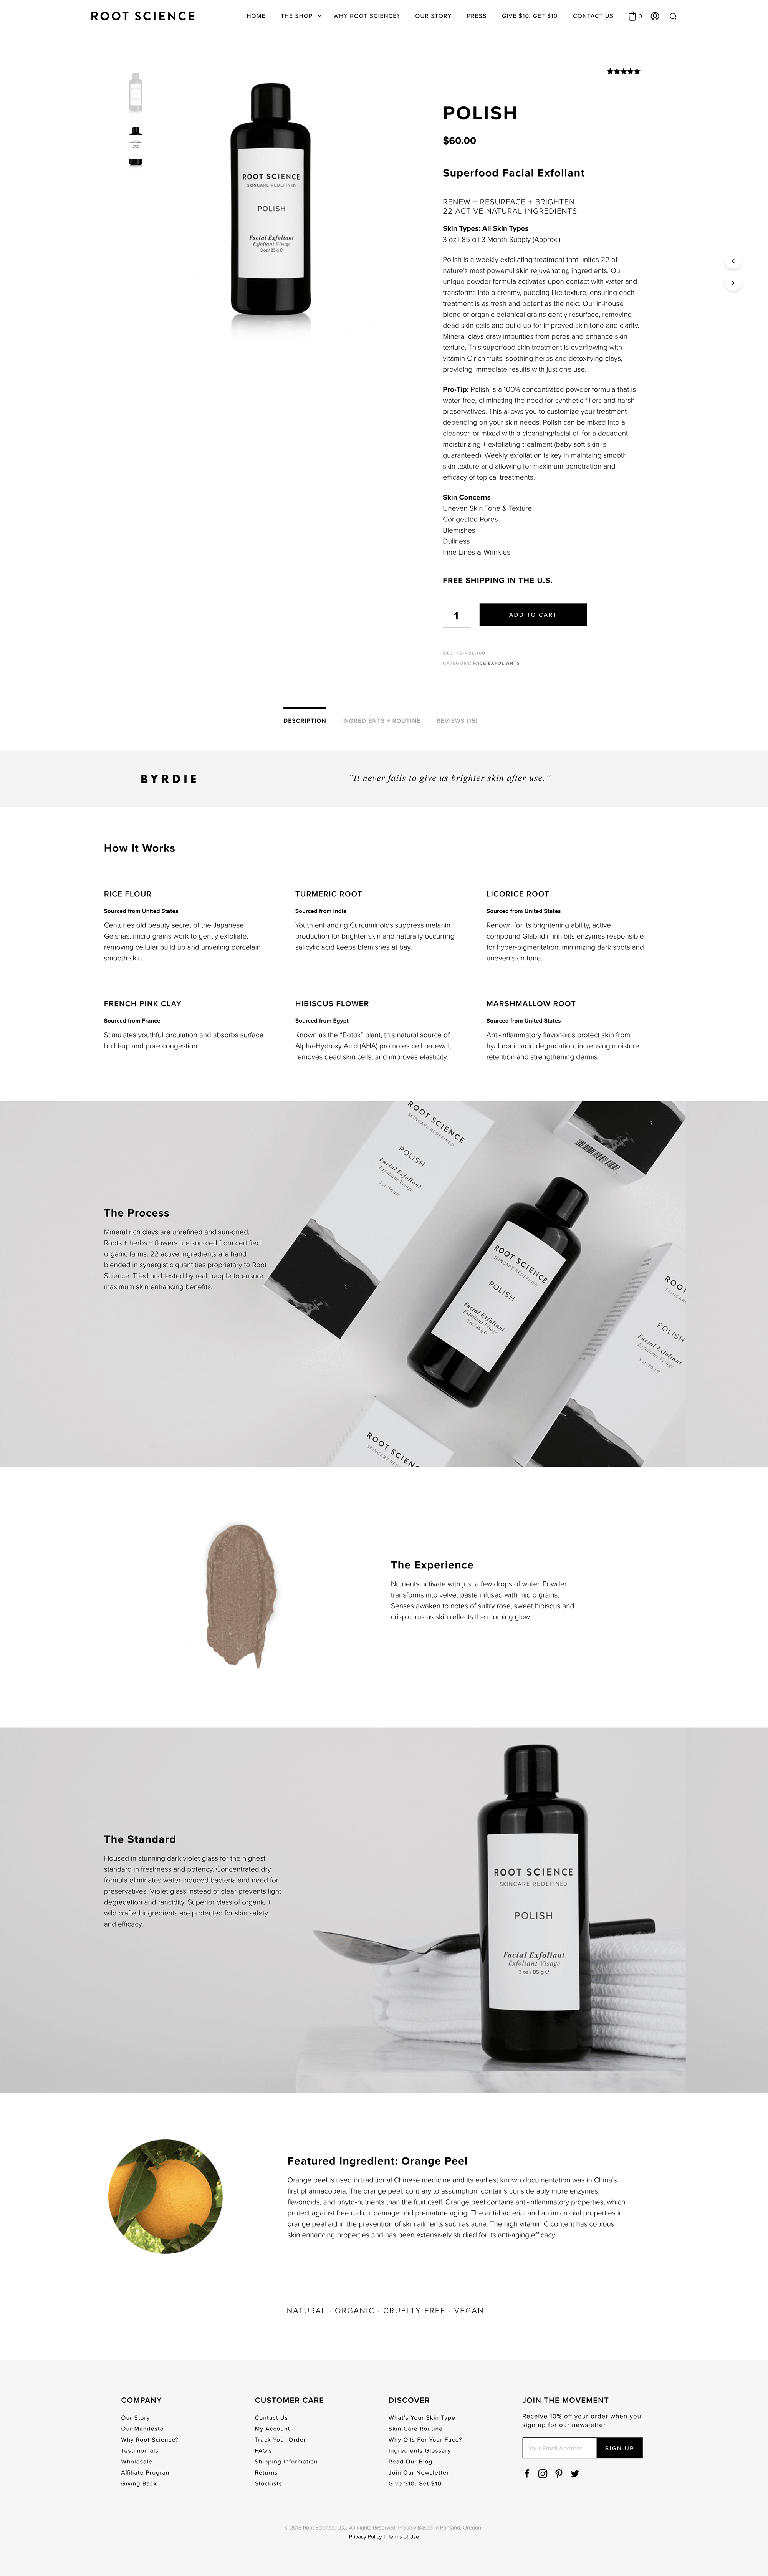 Root Science Skincare